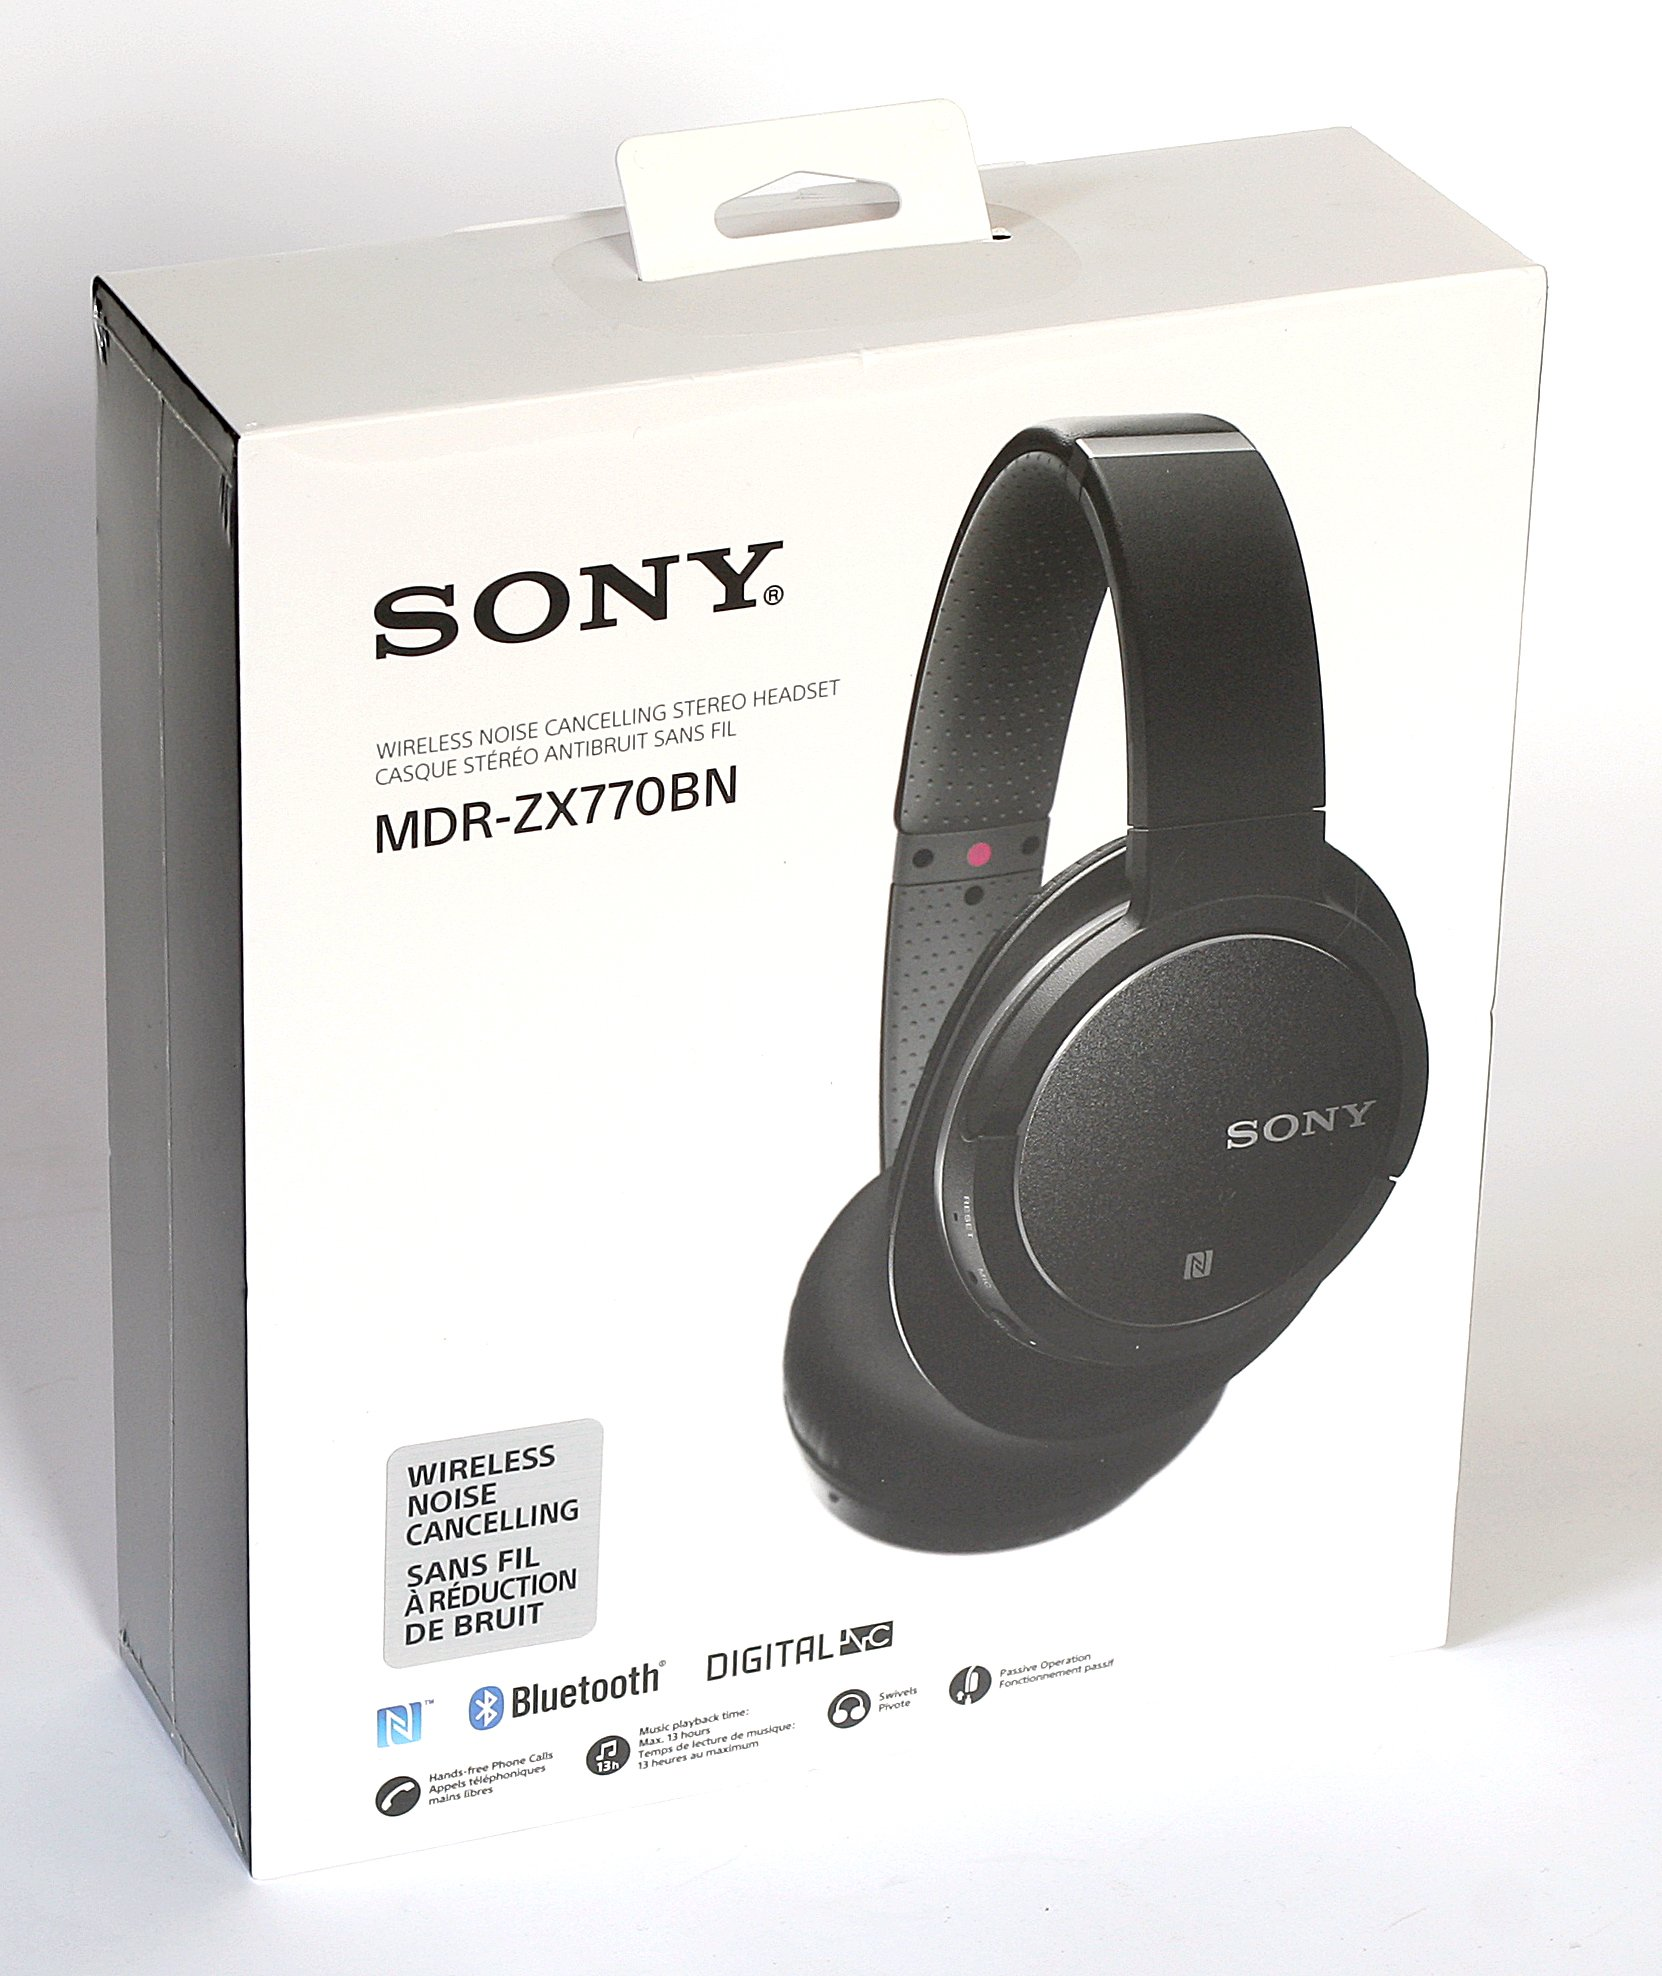 Sony Cancelling Image Mdrzx770bnb Noise Bluetooth Headphones Of